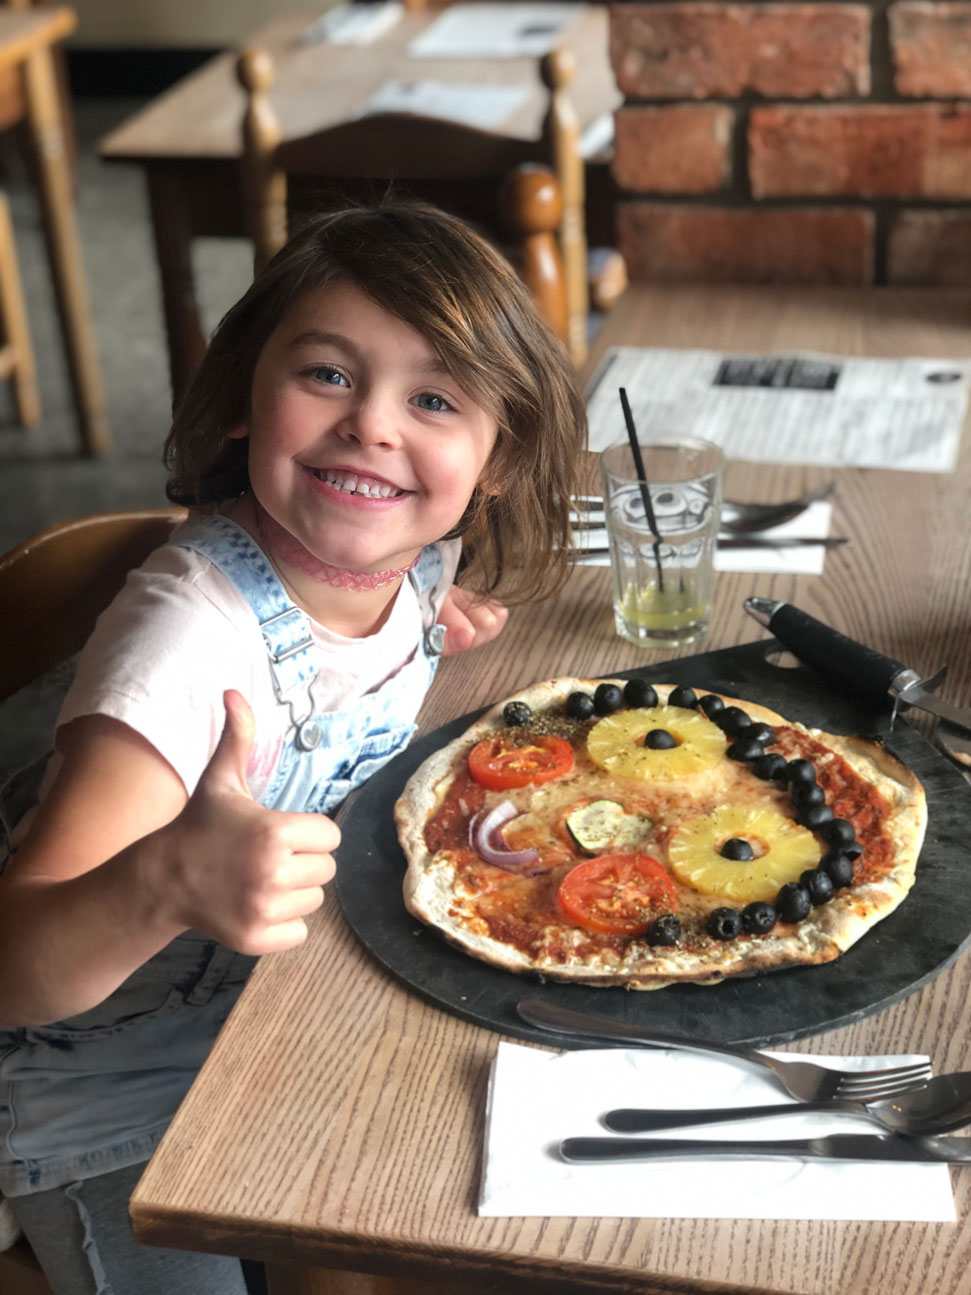 Enjoying Pizza at Gios! | Pizza + Pasta Crewe | Gios Crewe | Cheshire